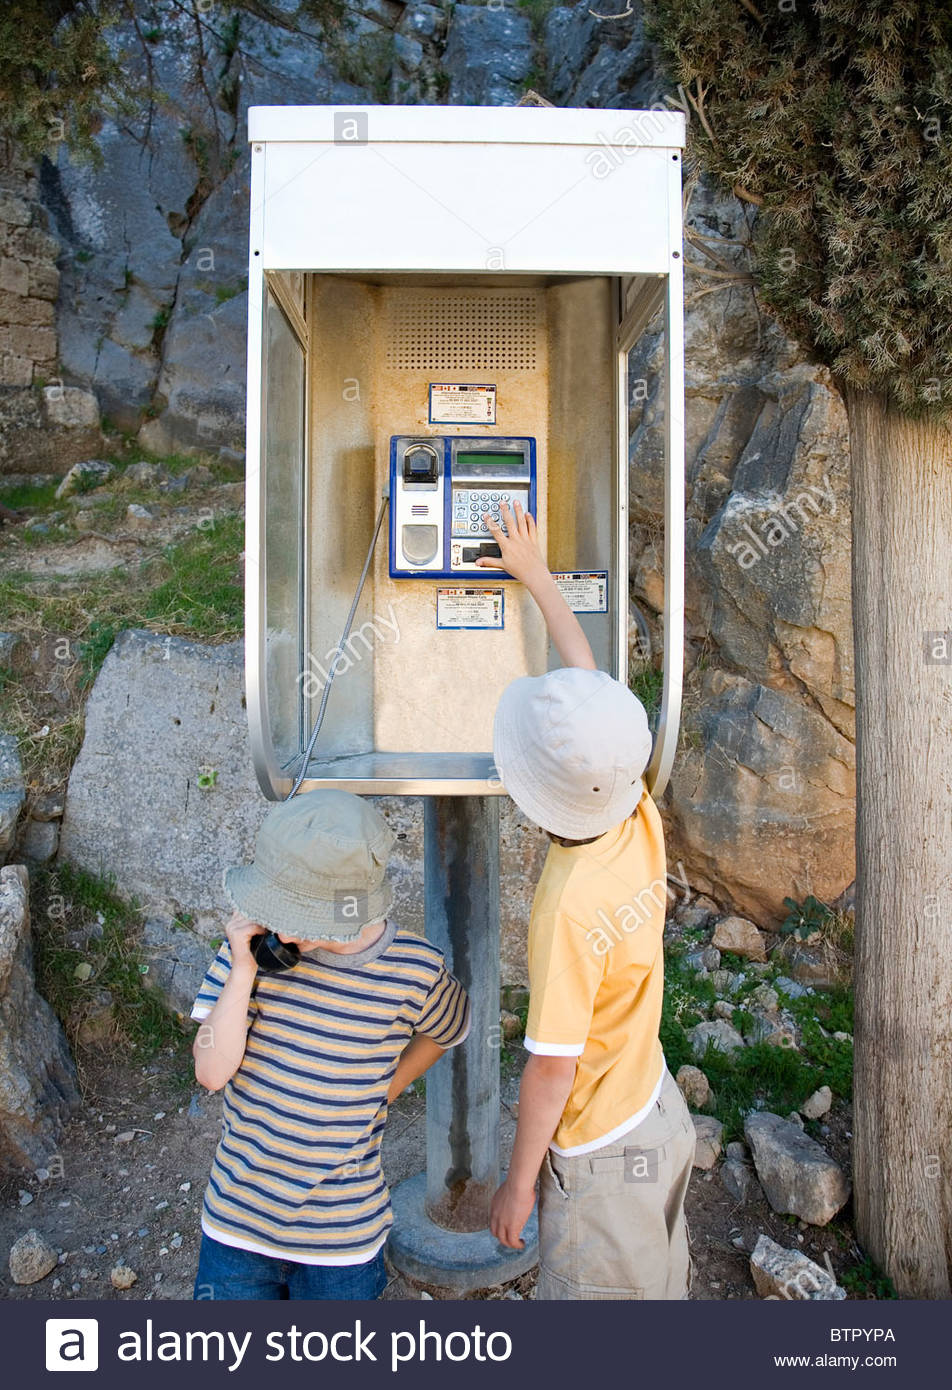 Two boys on phone in public phone box - Stock Image